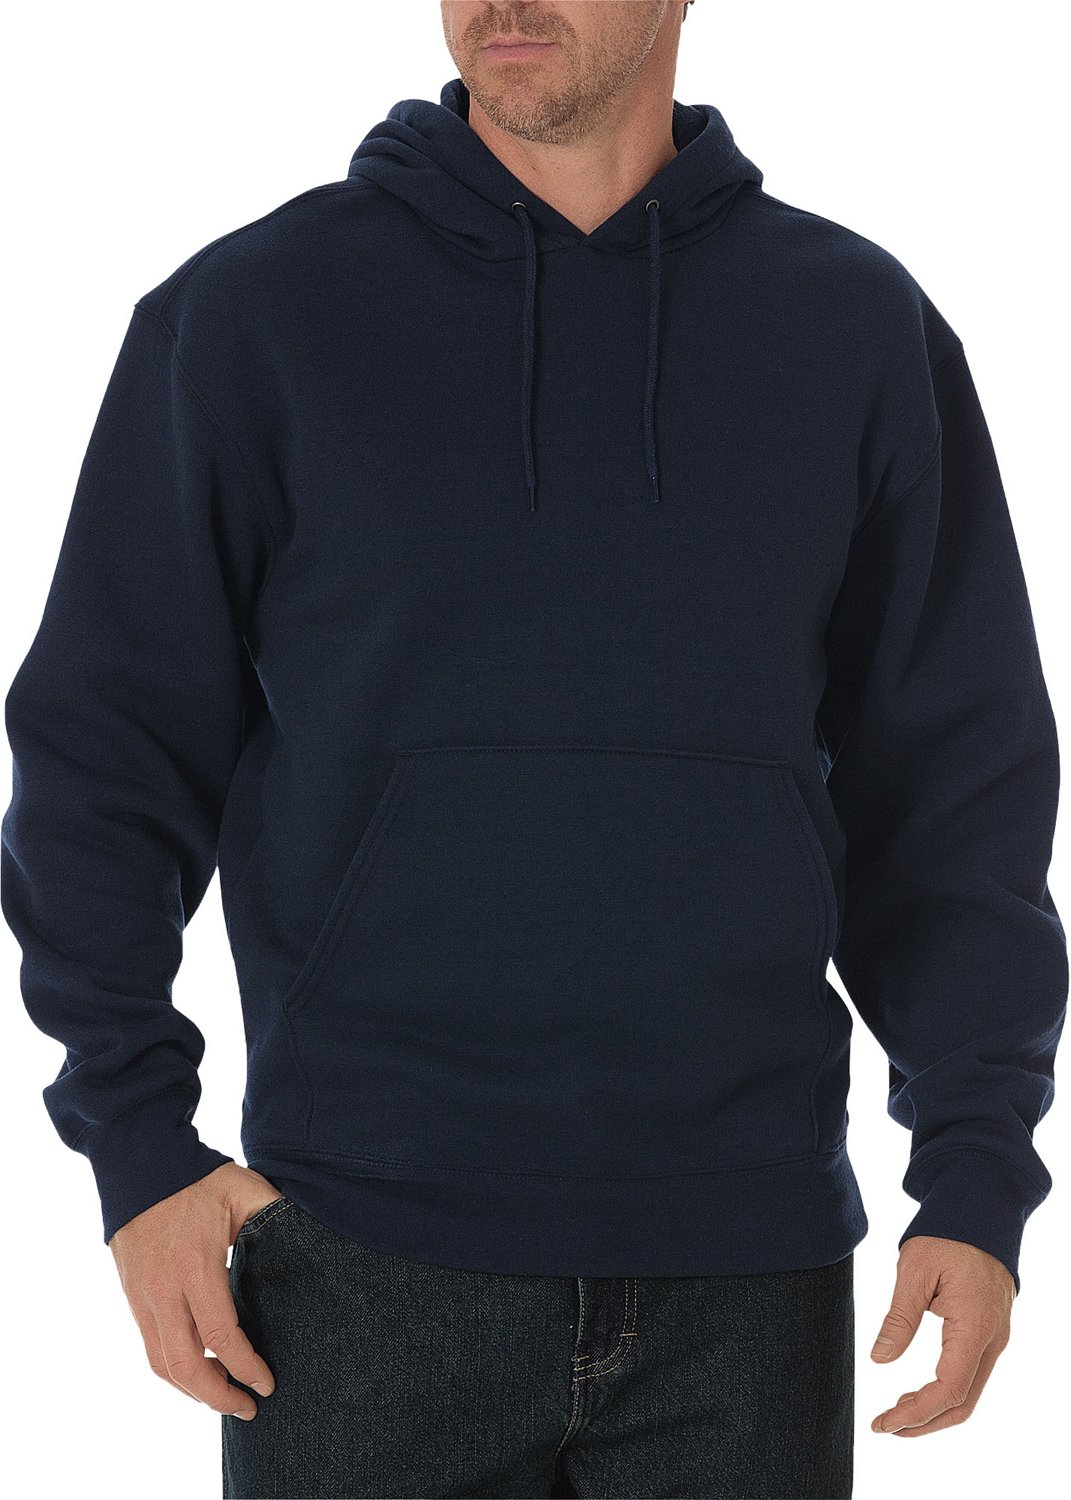 Display product reviews for Dickies Men's Midweight Fleece Pullover Hoodie